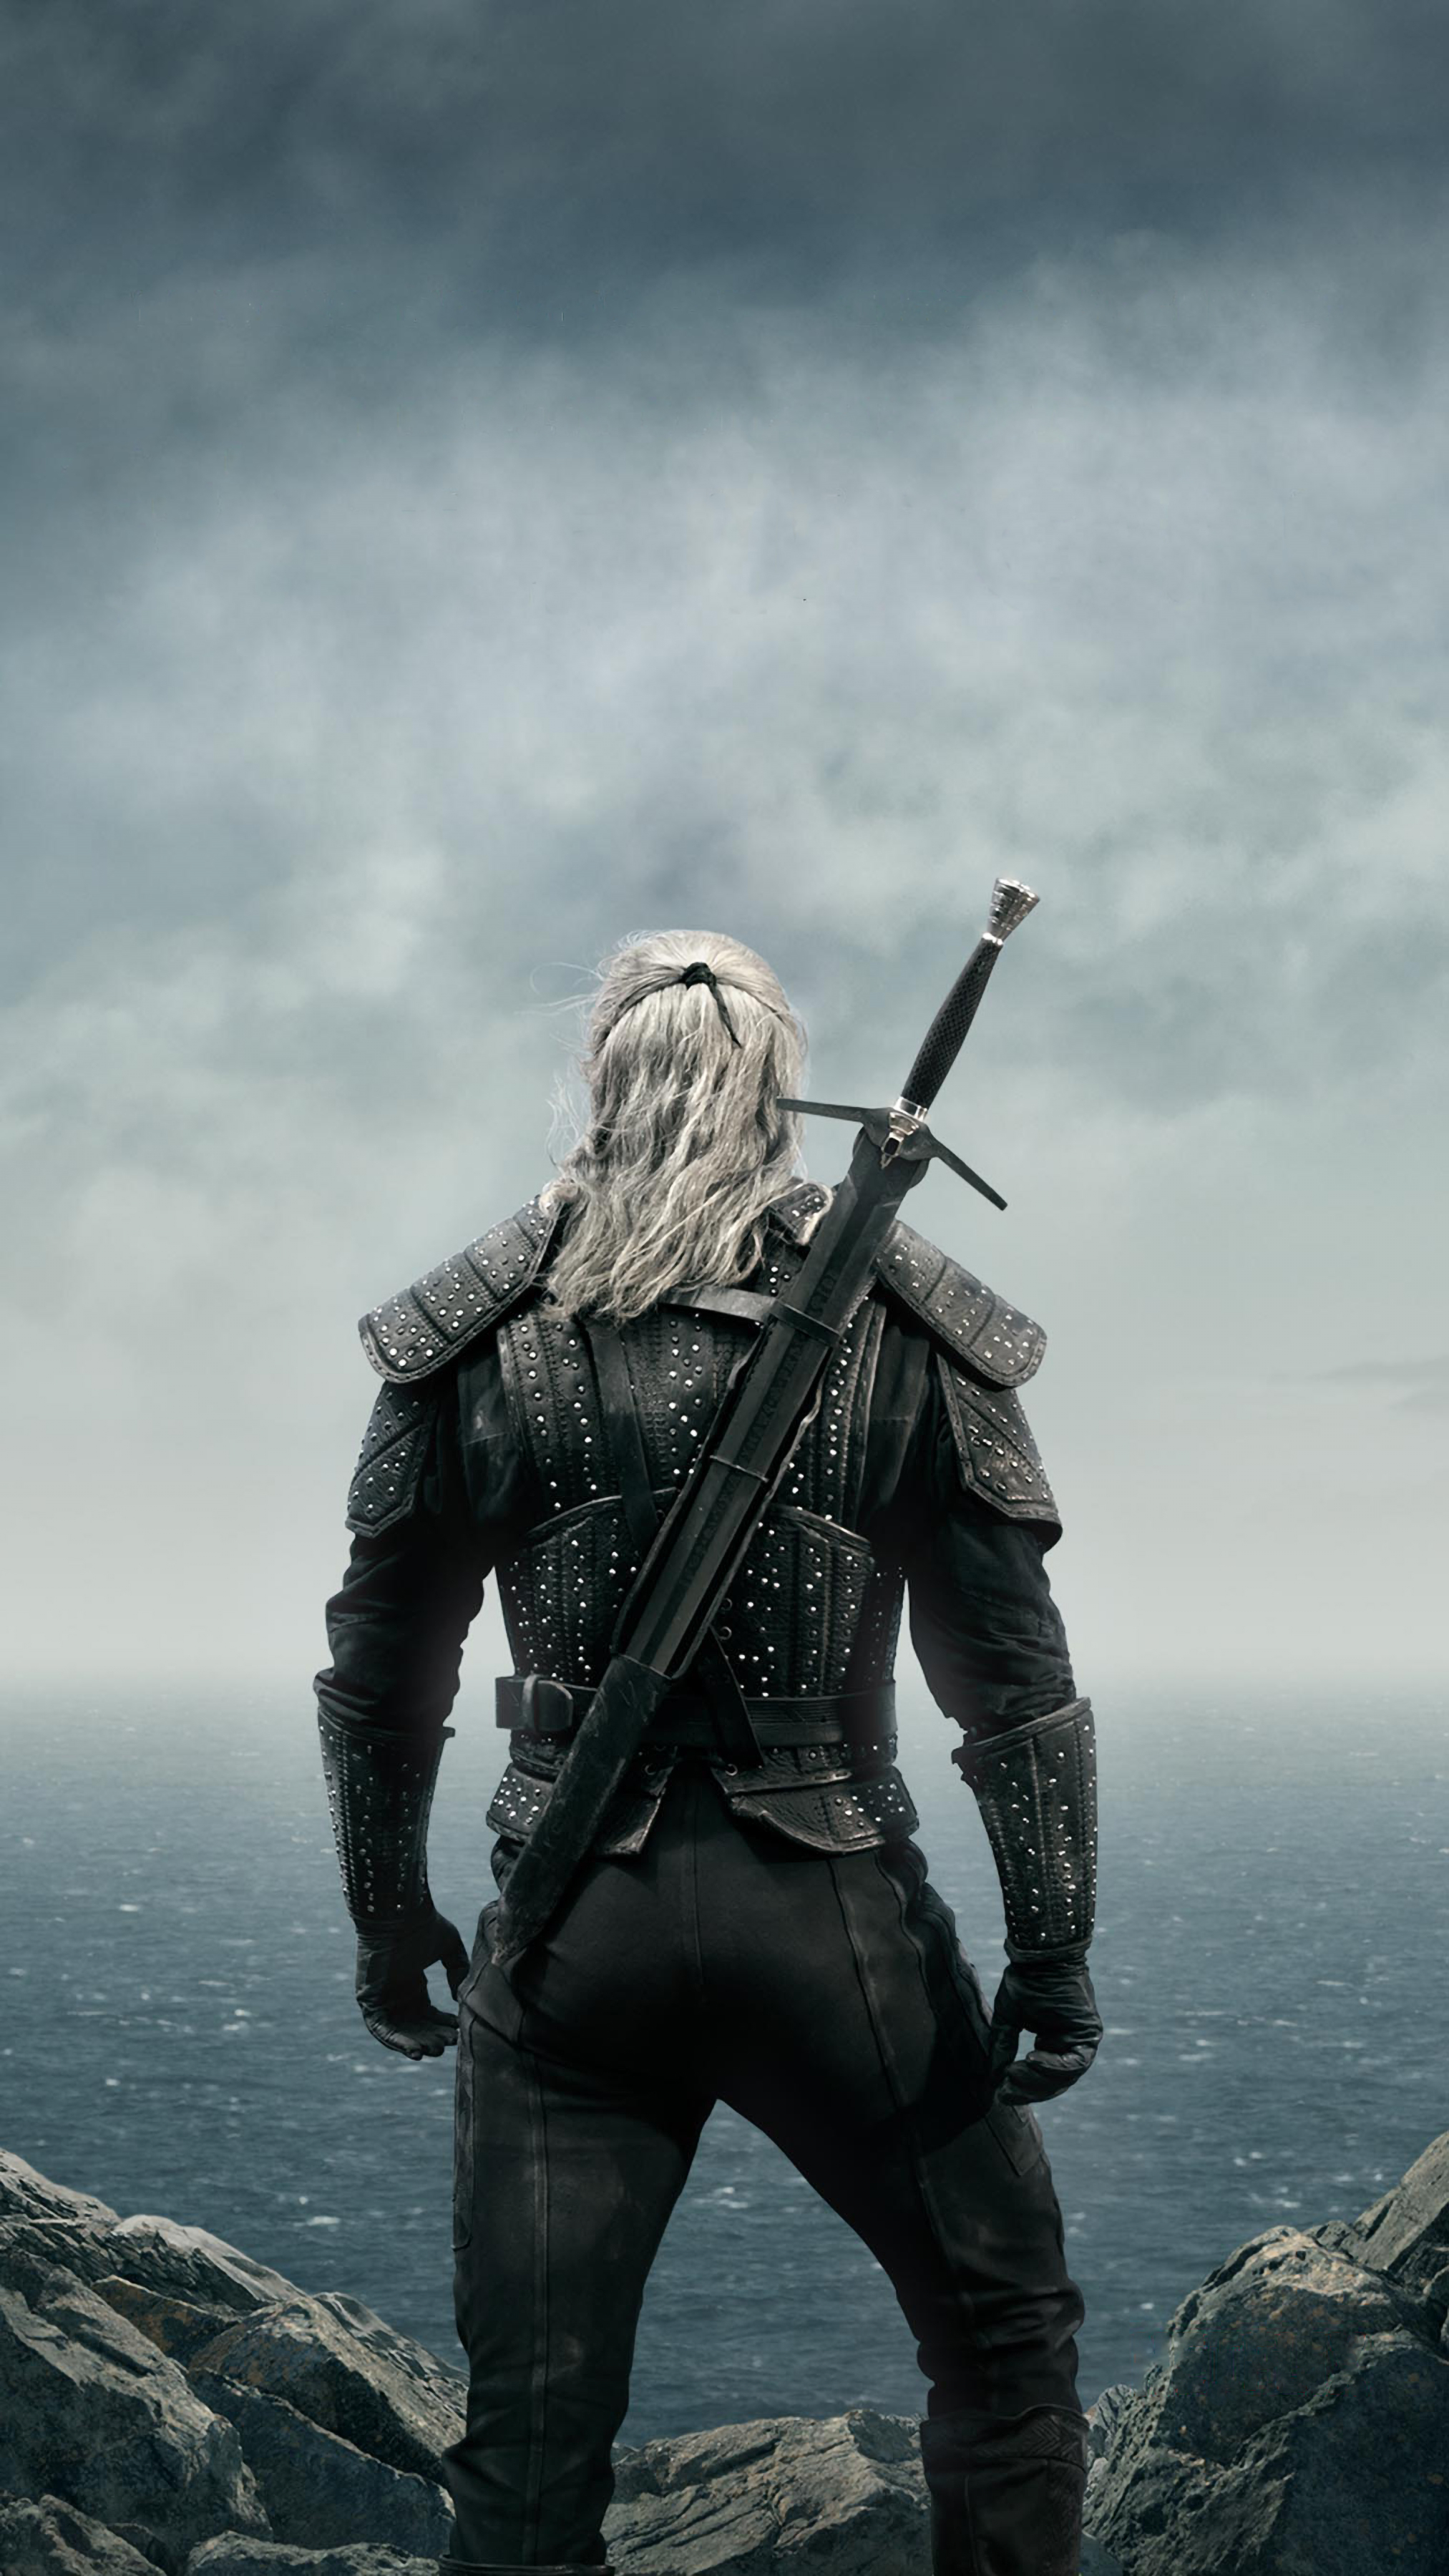 Netflix's The Witcher season 1, Plot Titles, Release Dates and more ...